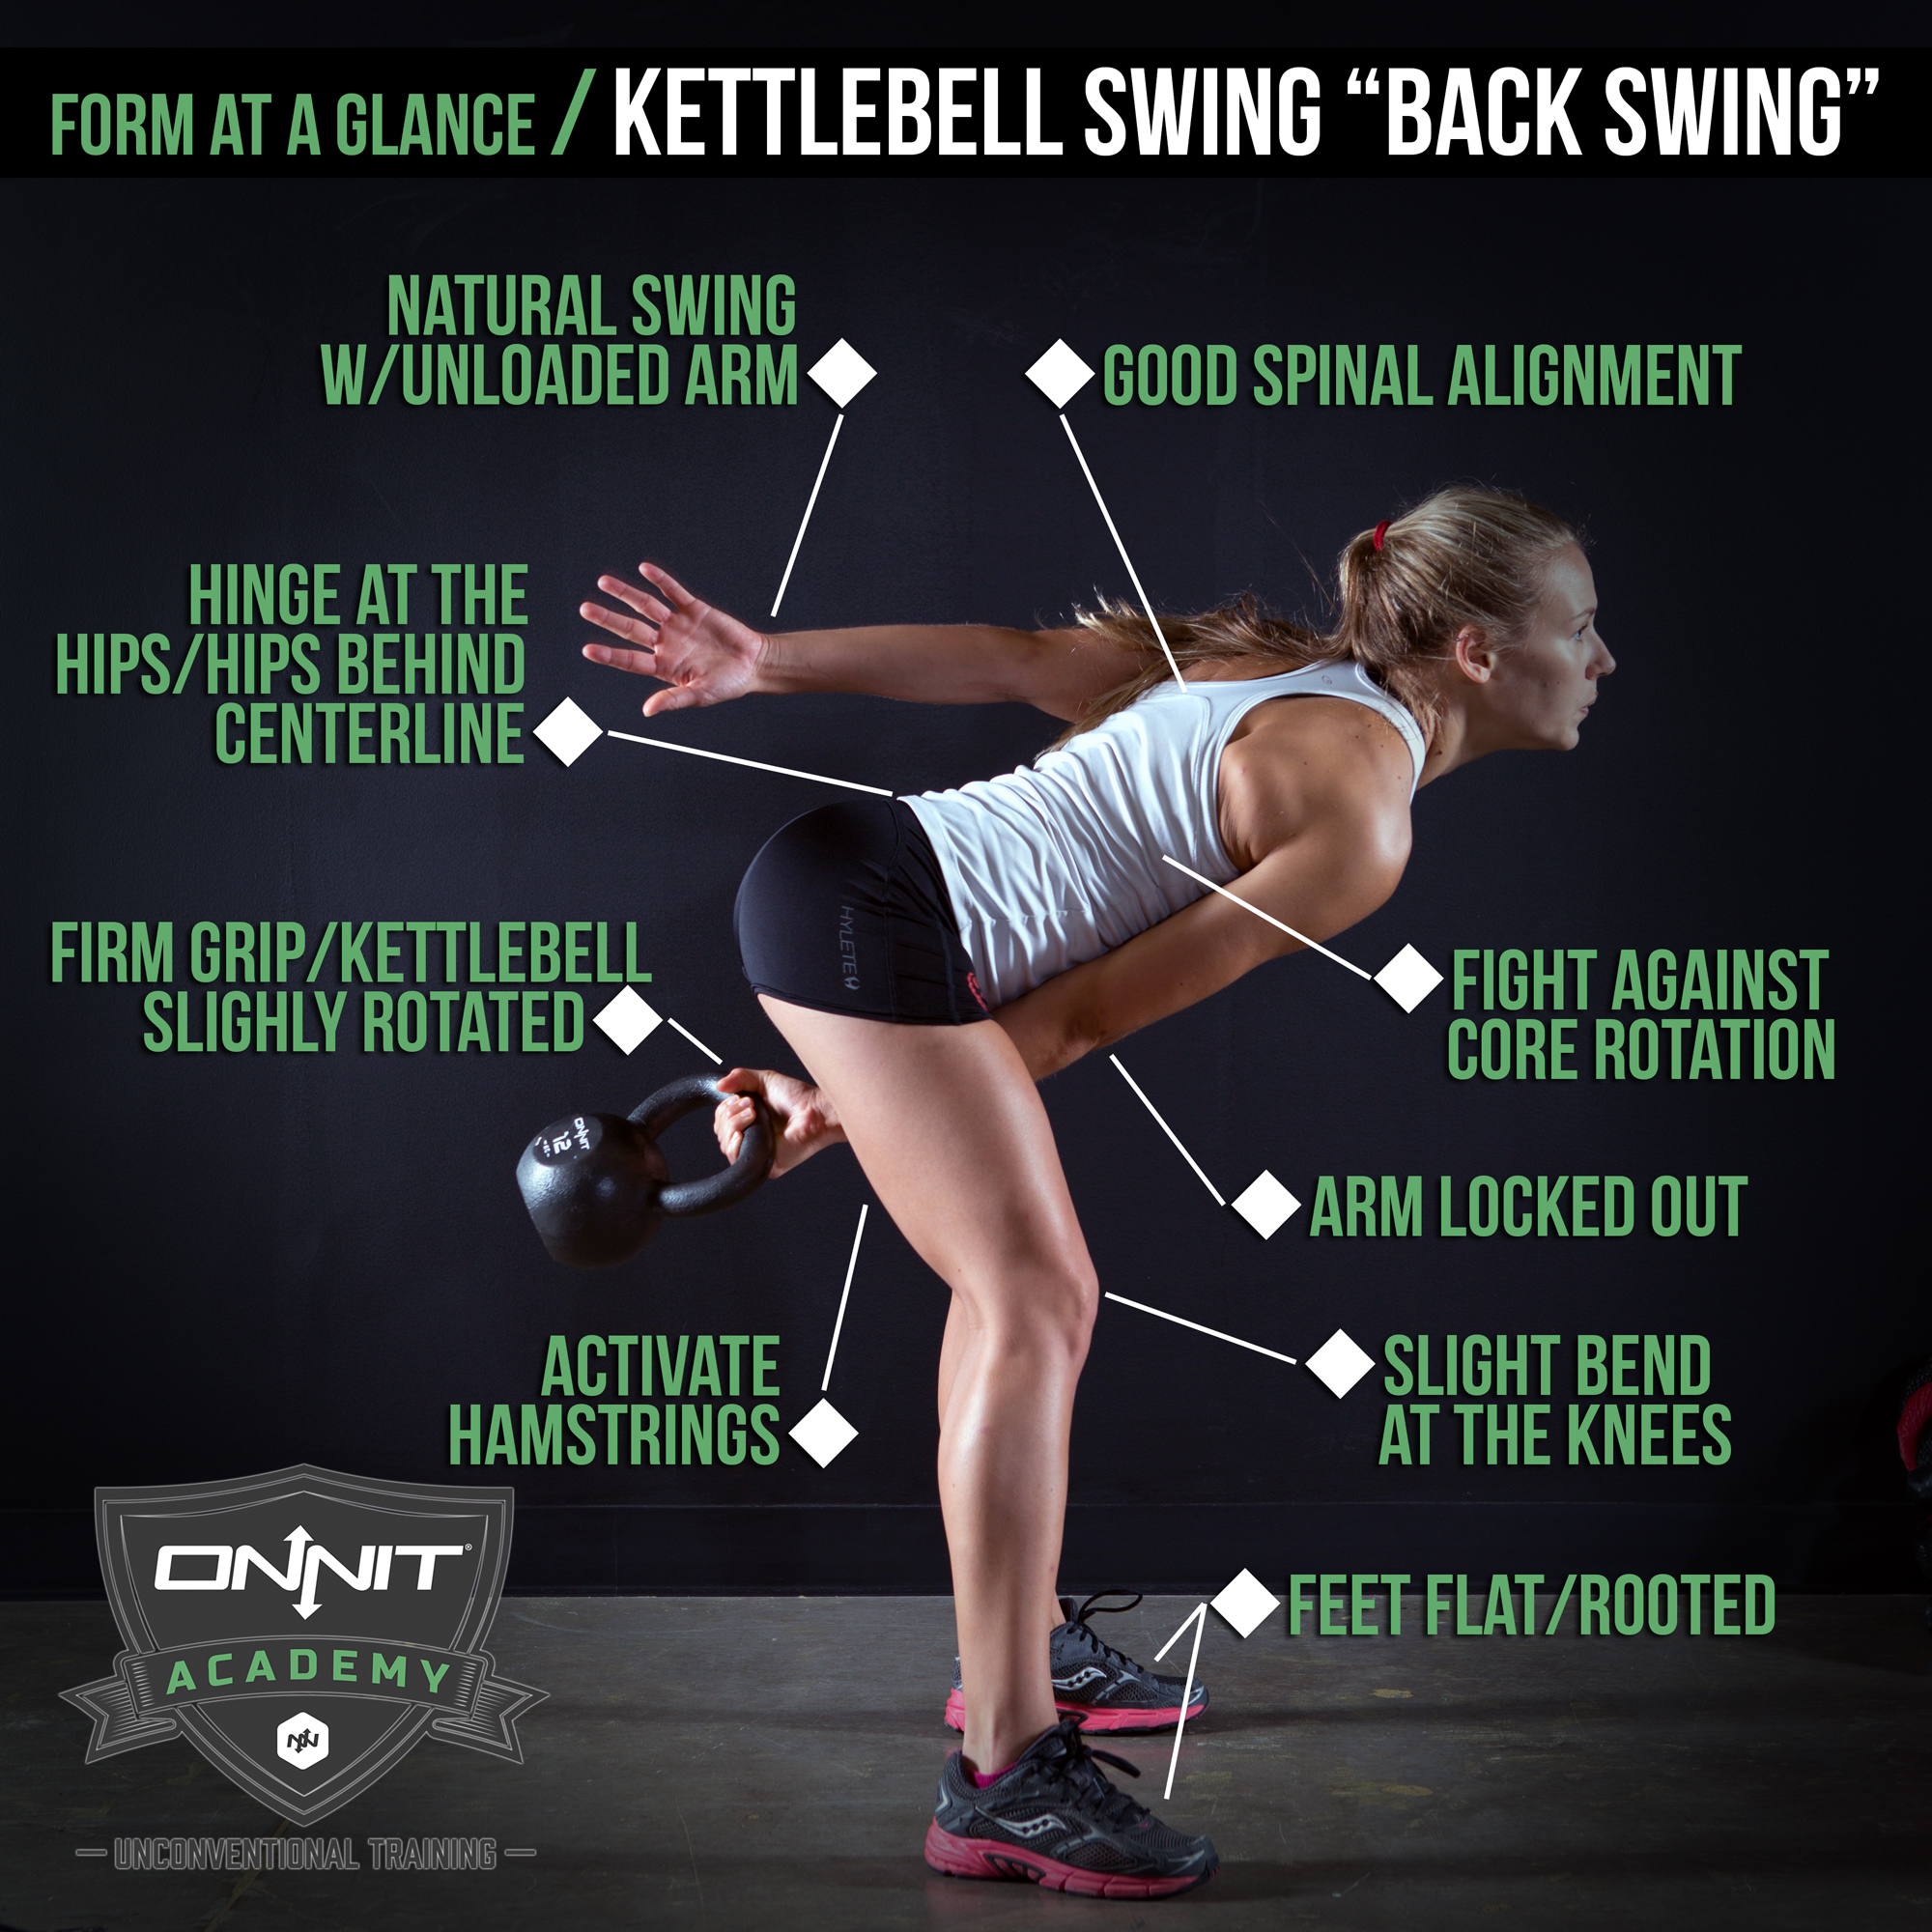 Swing with kettlebell